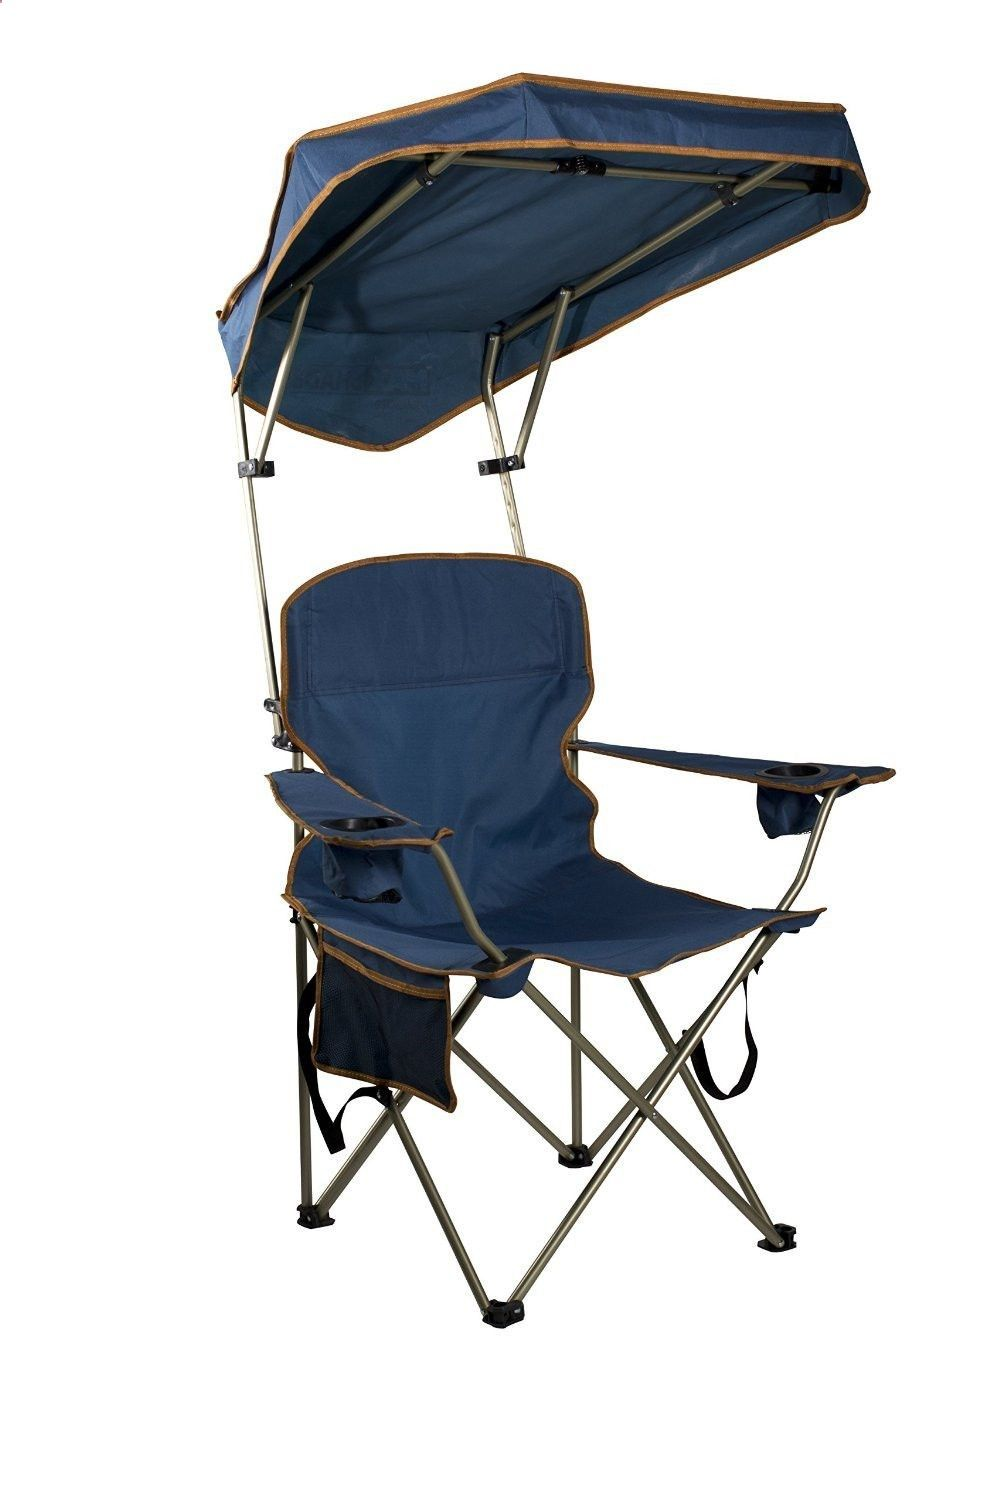 4e0f687f6d Camping Chairs - Merica Shade Camp Chair | Camping, trips | Outdoor ...